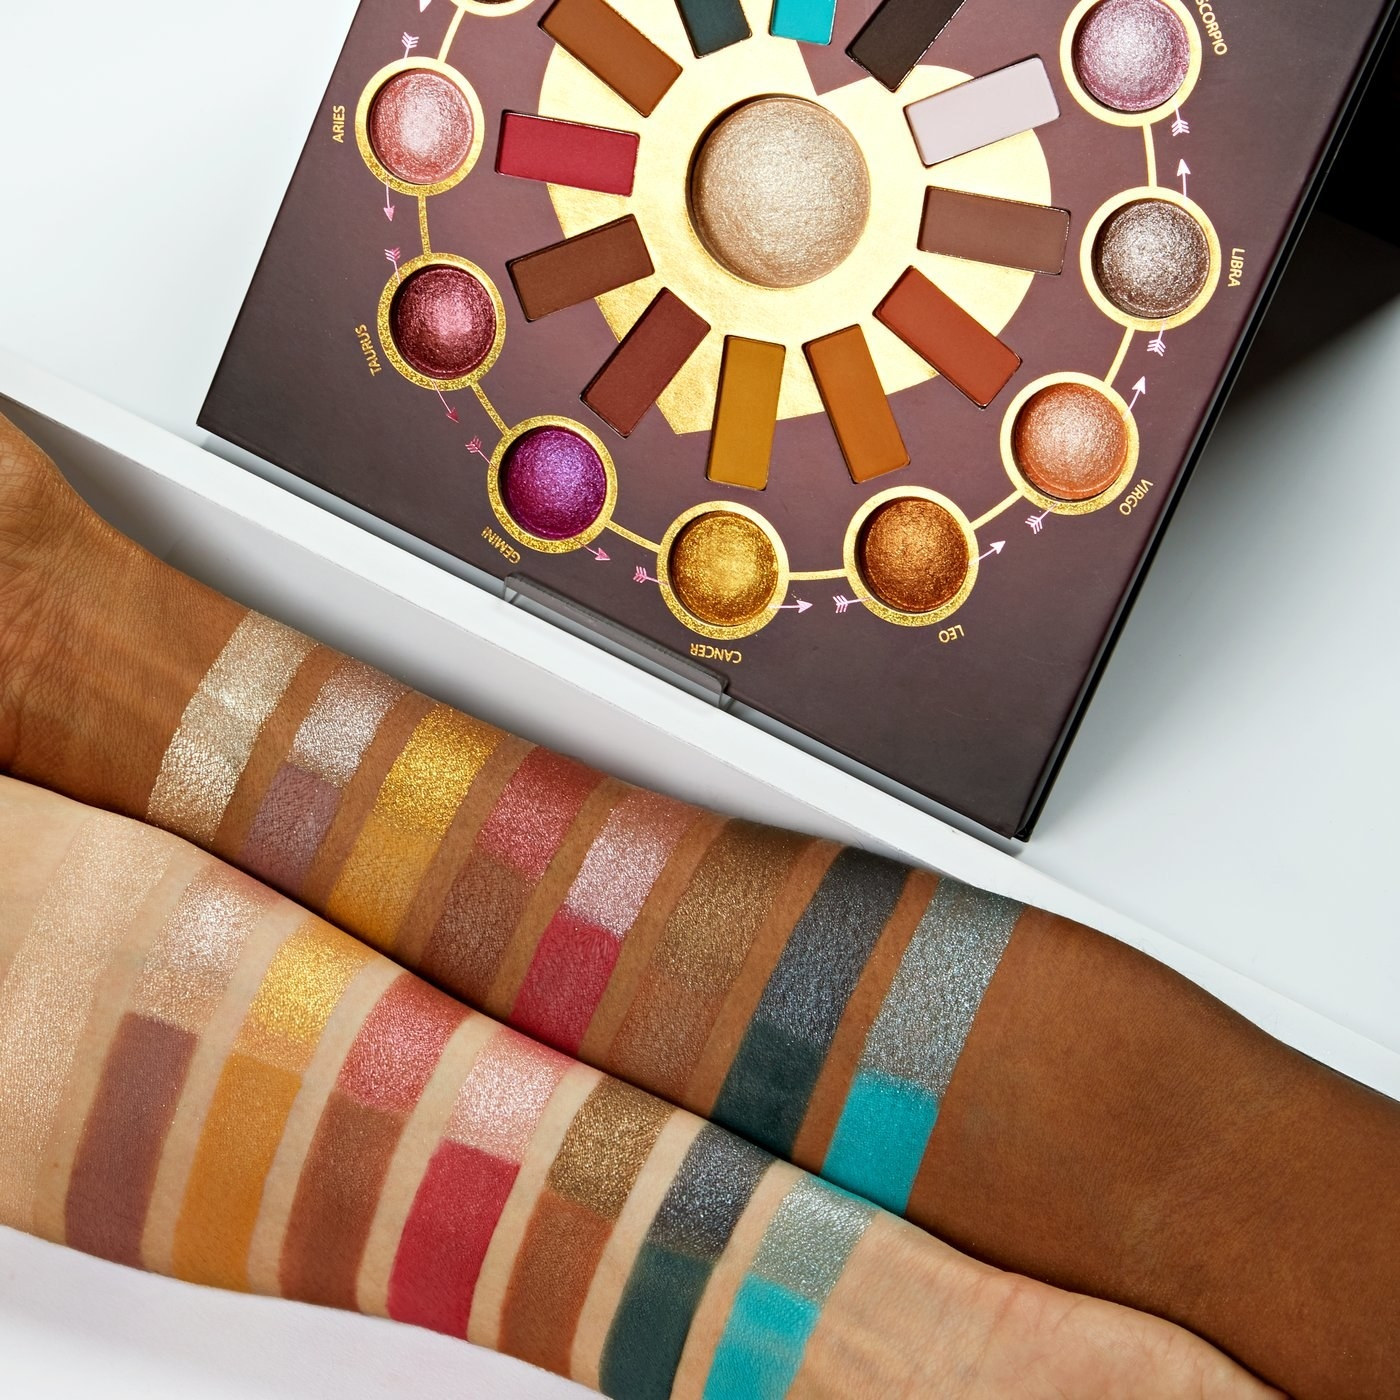 two arms display various swatches of colors in blues, golds, and reds next to the palette which is zodiac themed